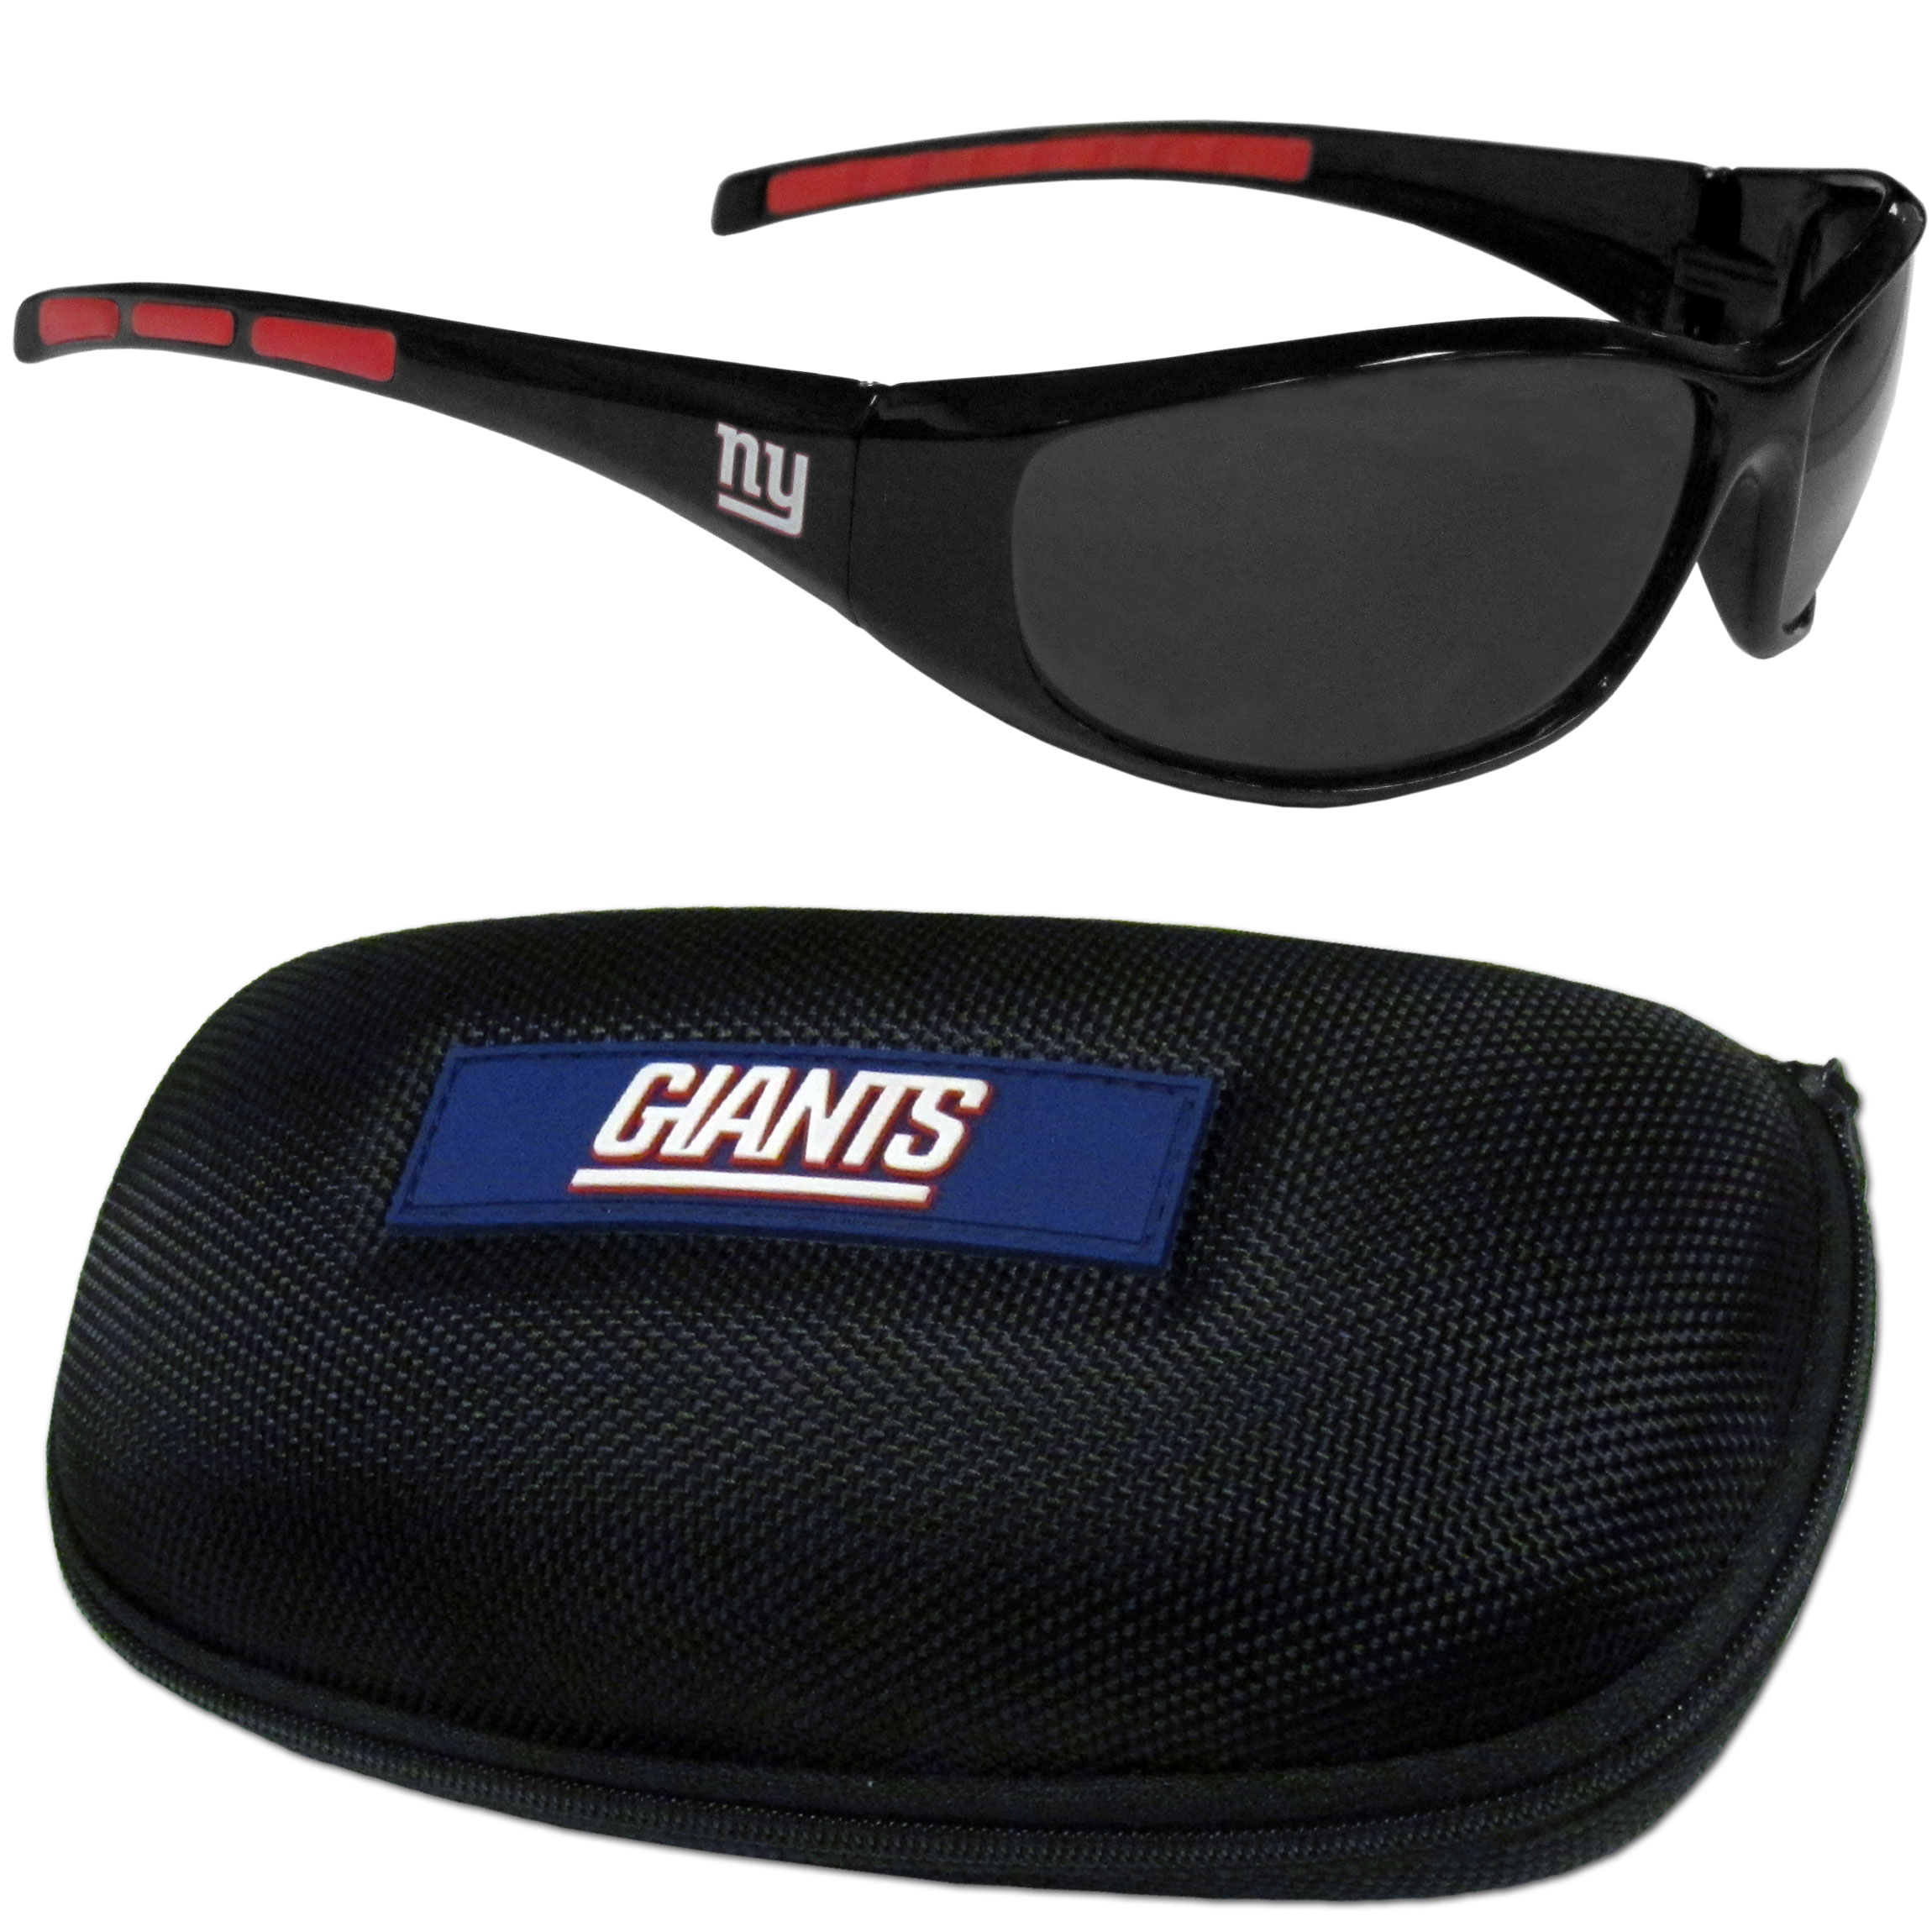 New York Giants Wrap Sunglass and Case Set - This great set includes a high quality pair of New York Giants wrap sunglasses and hard carrying case.